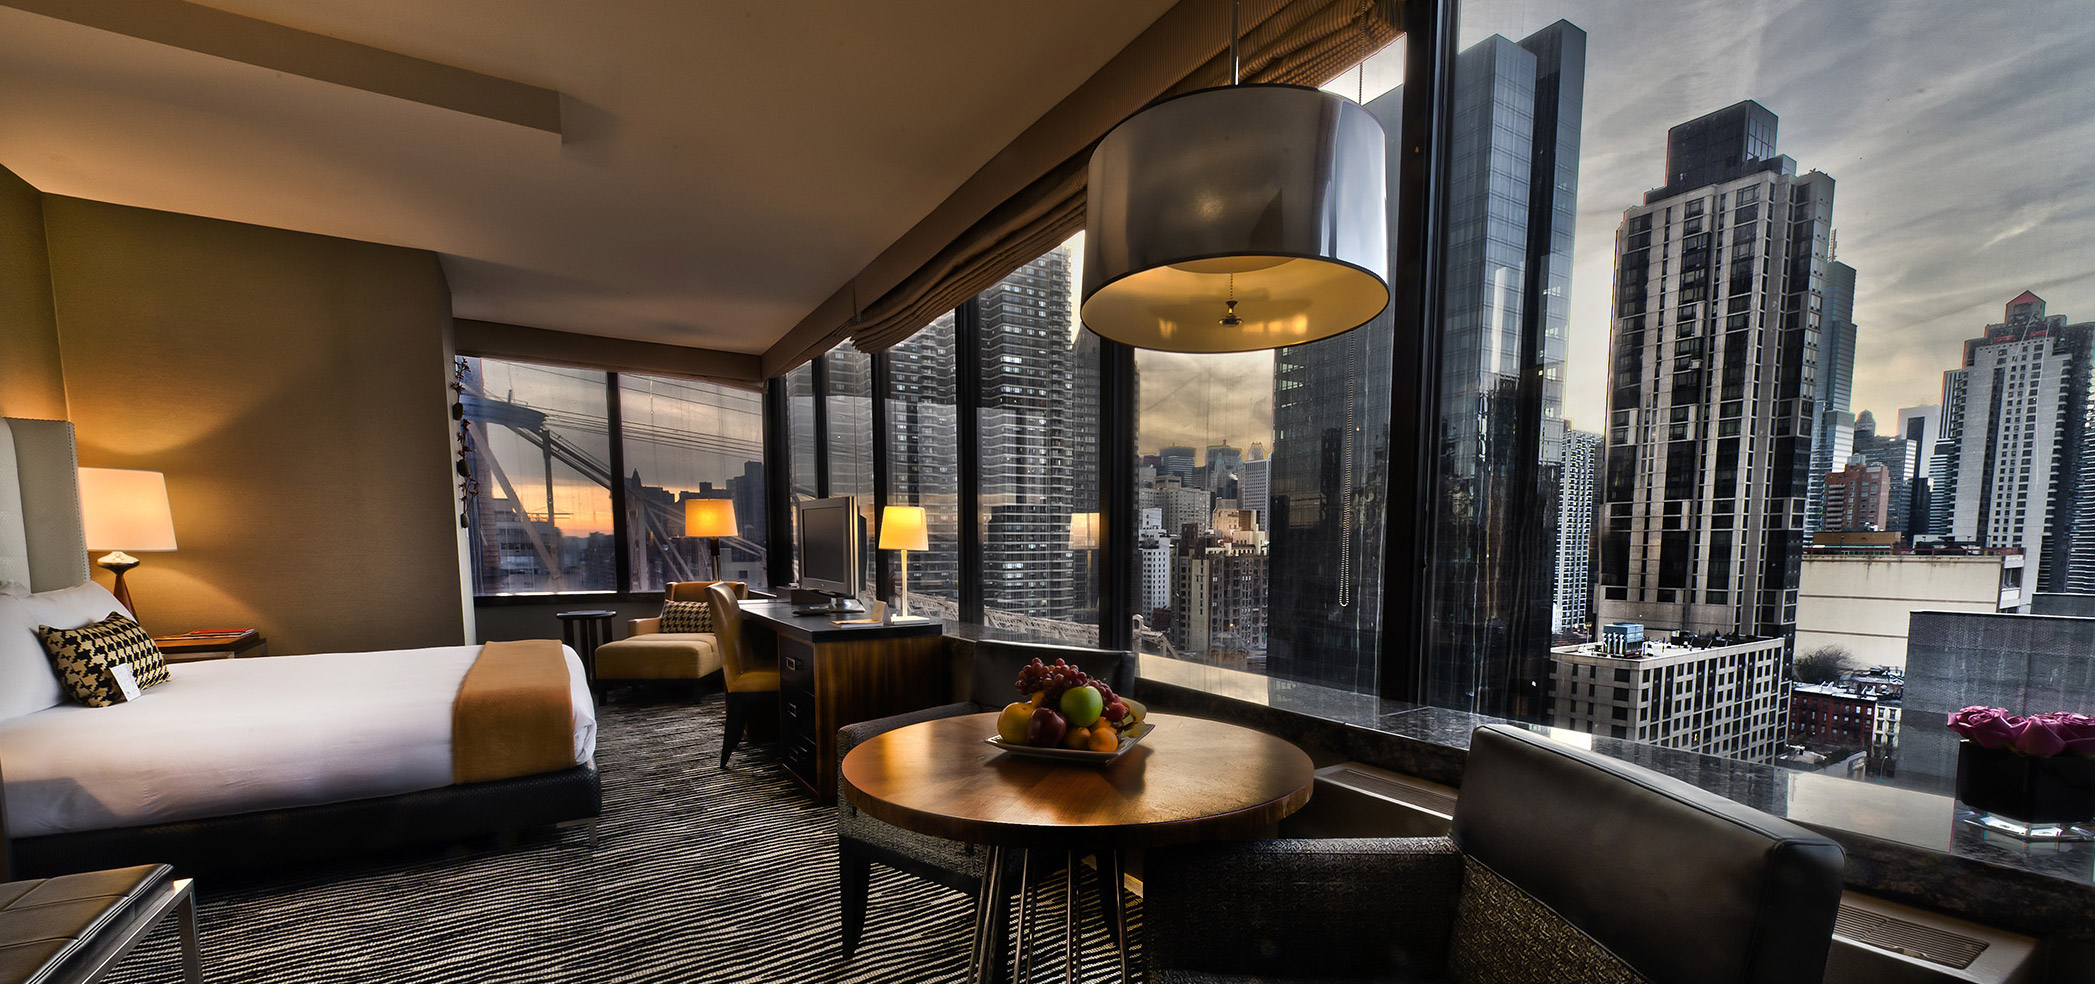 Skyline Plaza Restaurant New York Hotels That Offer The Best View Of The City